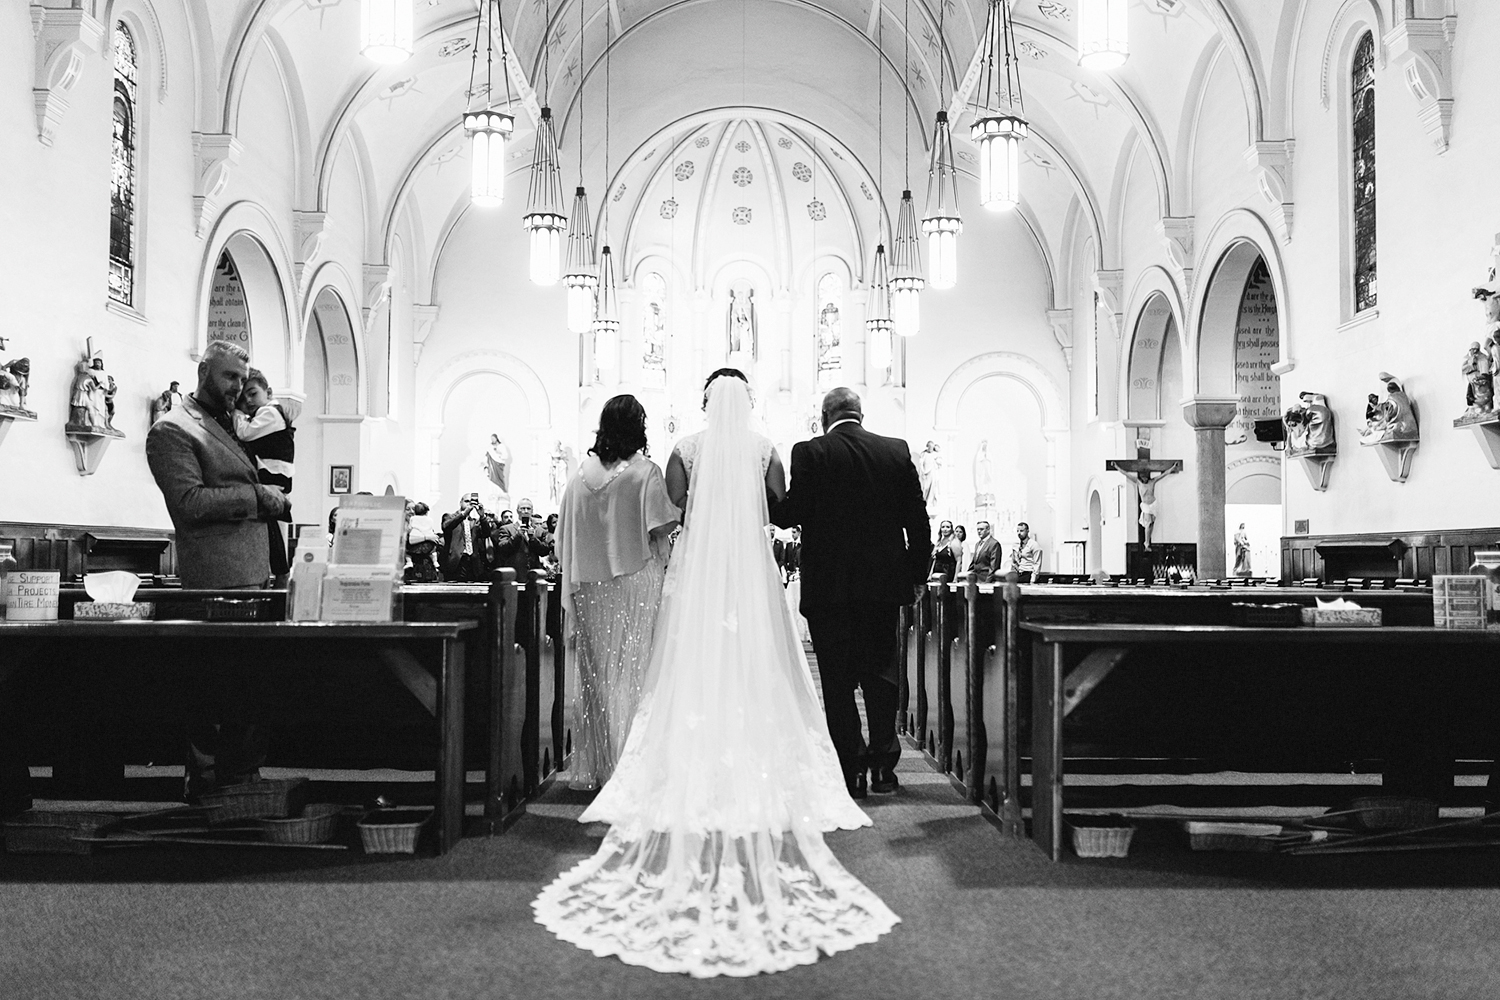 Toronto's-Best-Film-Wedding-Photography-3B-Photography-Brian-Batista-Bettencourt-Multicultural-wedding-day-two-Hamilton-Grimsby-Toronto-Wedding-candid-documentary-portrait-vintage-inspired-church-ceremony-bride-walking-down-aisle.jpg